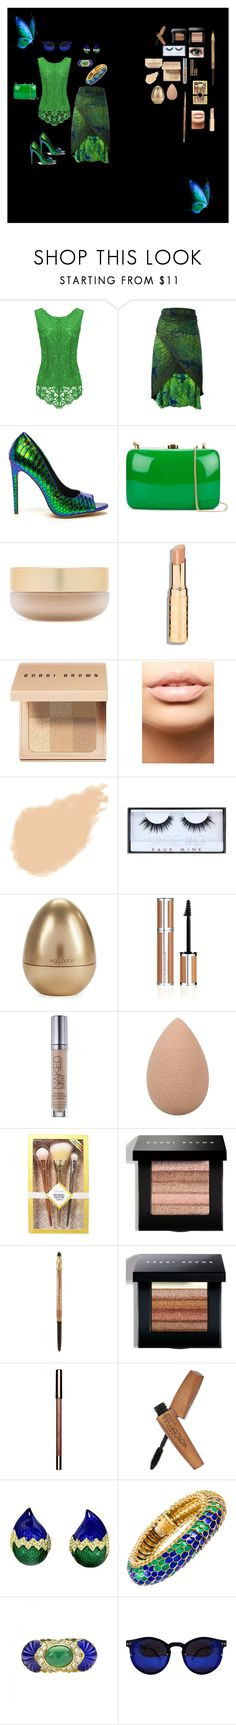 """Blue/Green Boho"" by bestnana7777 ❤ liked on Polyvore featuring Issey Miyake, Rocio, Eve Lom, Bobbi Brown Cosmetics, MDMflow, NARS Cosmetics, Huda Beauty, Tony Moly, Givenchy and Urban Decay"